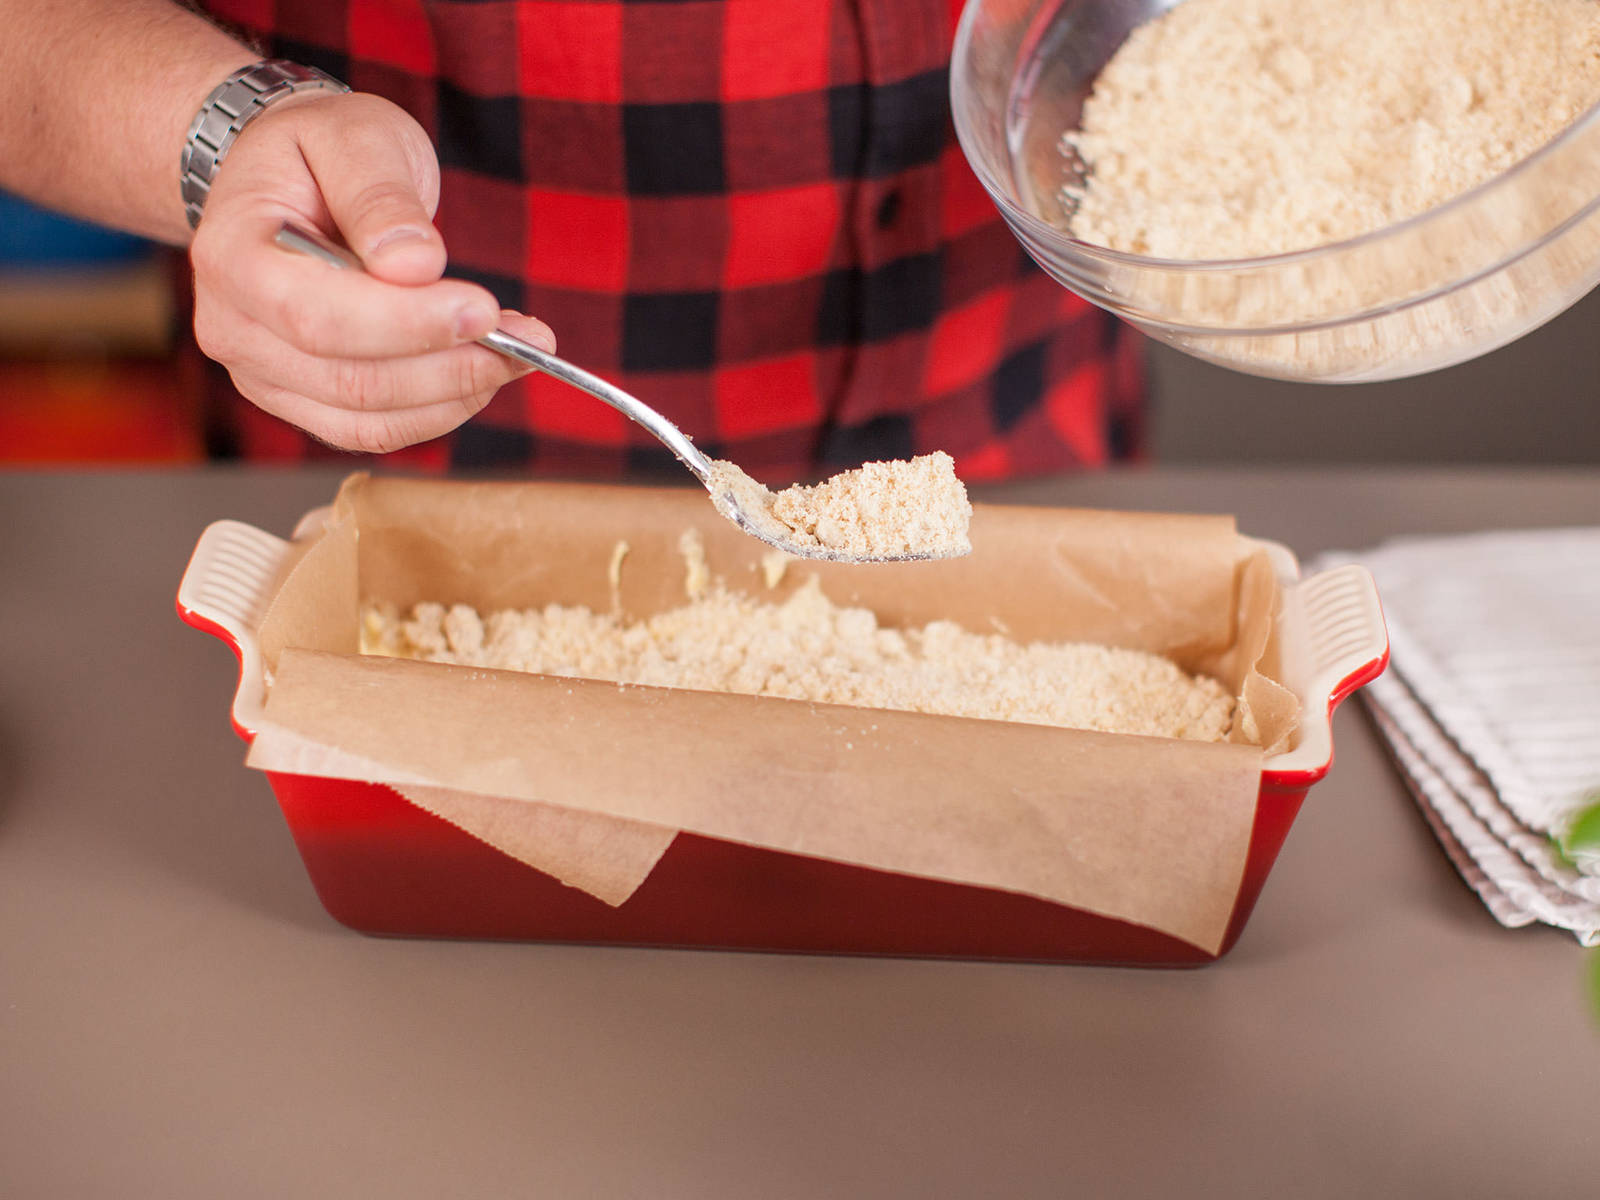 Line loaf pan with parchment paper. Transfer dough into pan and top with crumbs. Bake in preheated oven at 160°C/320°F for approx. 40 - 45 min.